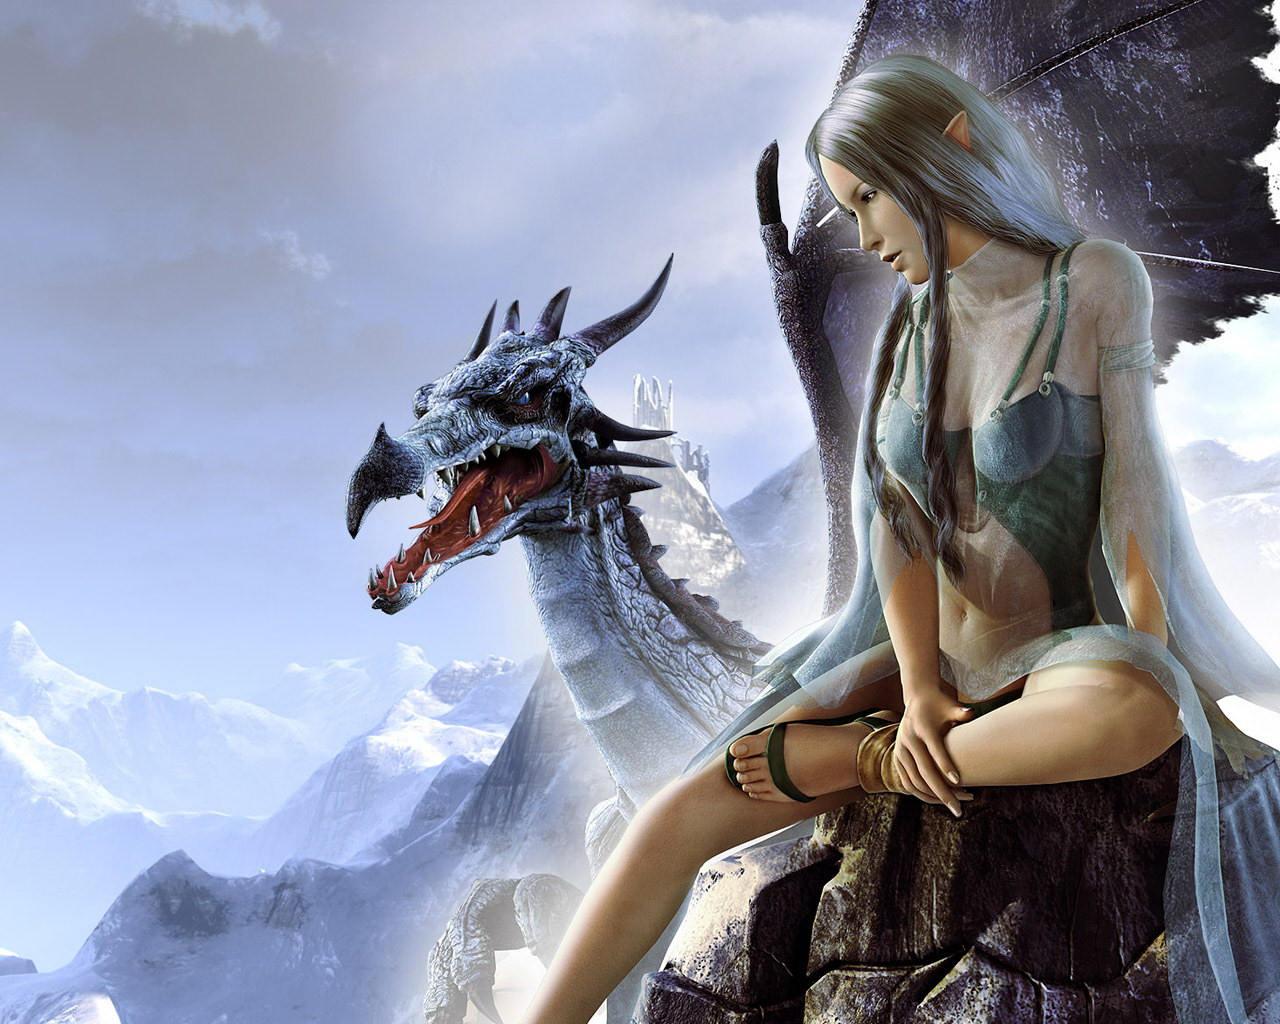 Stunning Hd Fantasy Gaming Desktop Wallpapers: Wallpaper Collections: Fantasy Wallpapers #2